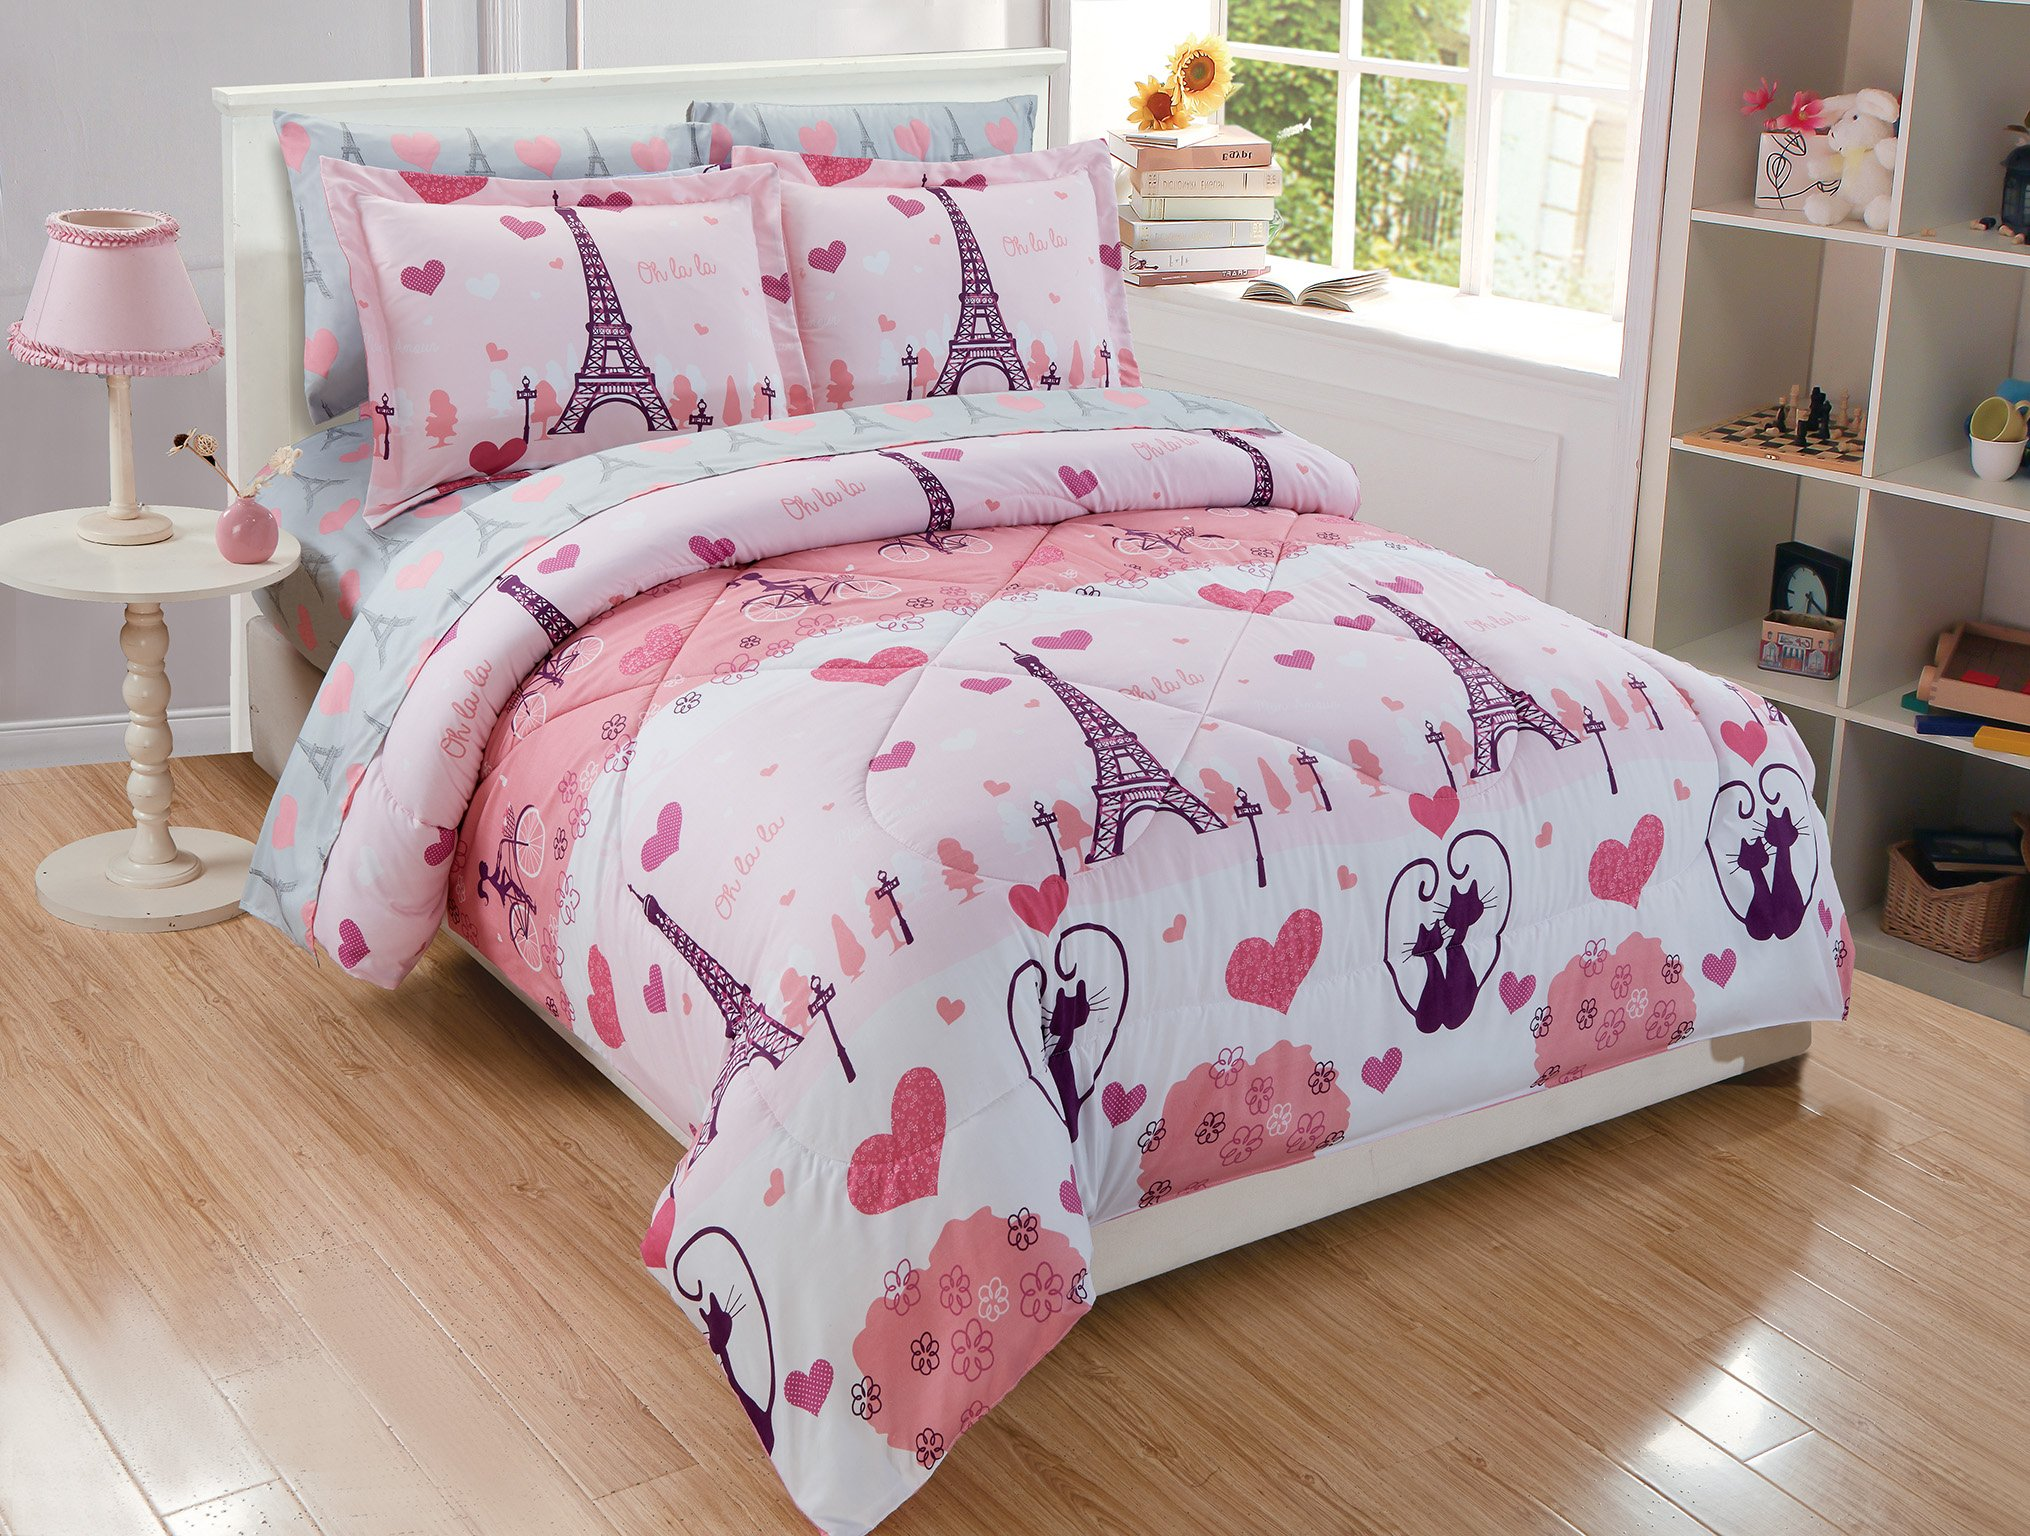 MK Home 7pc Queen Comforter Set For Girls Paris Bedding Eiffel Tower Pink Grey New by MK Home